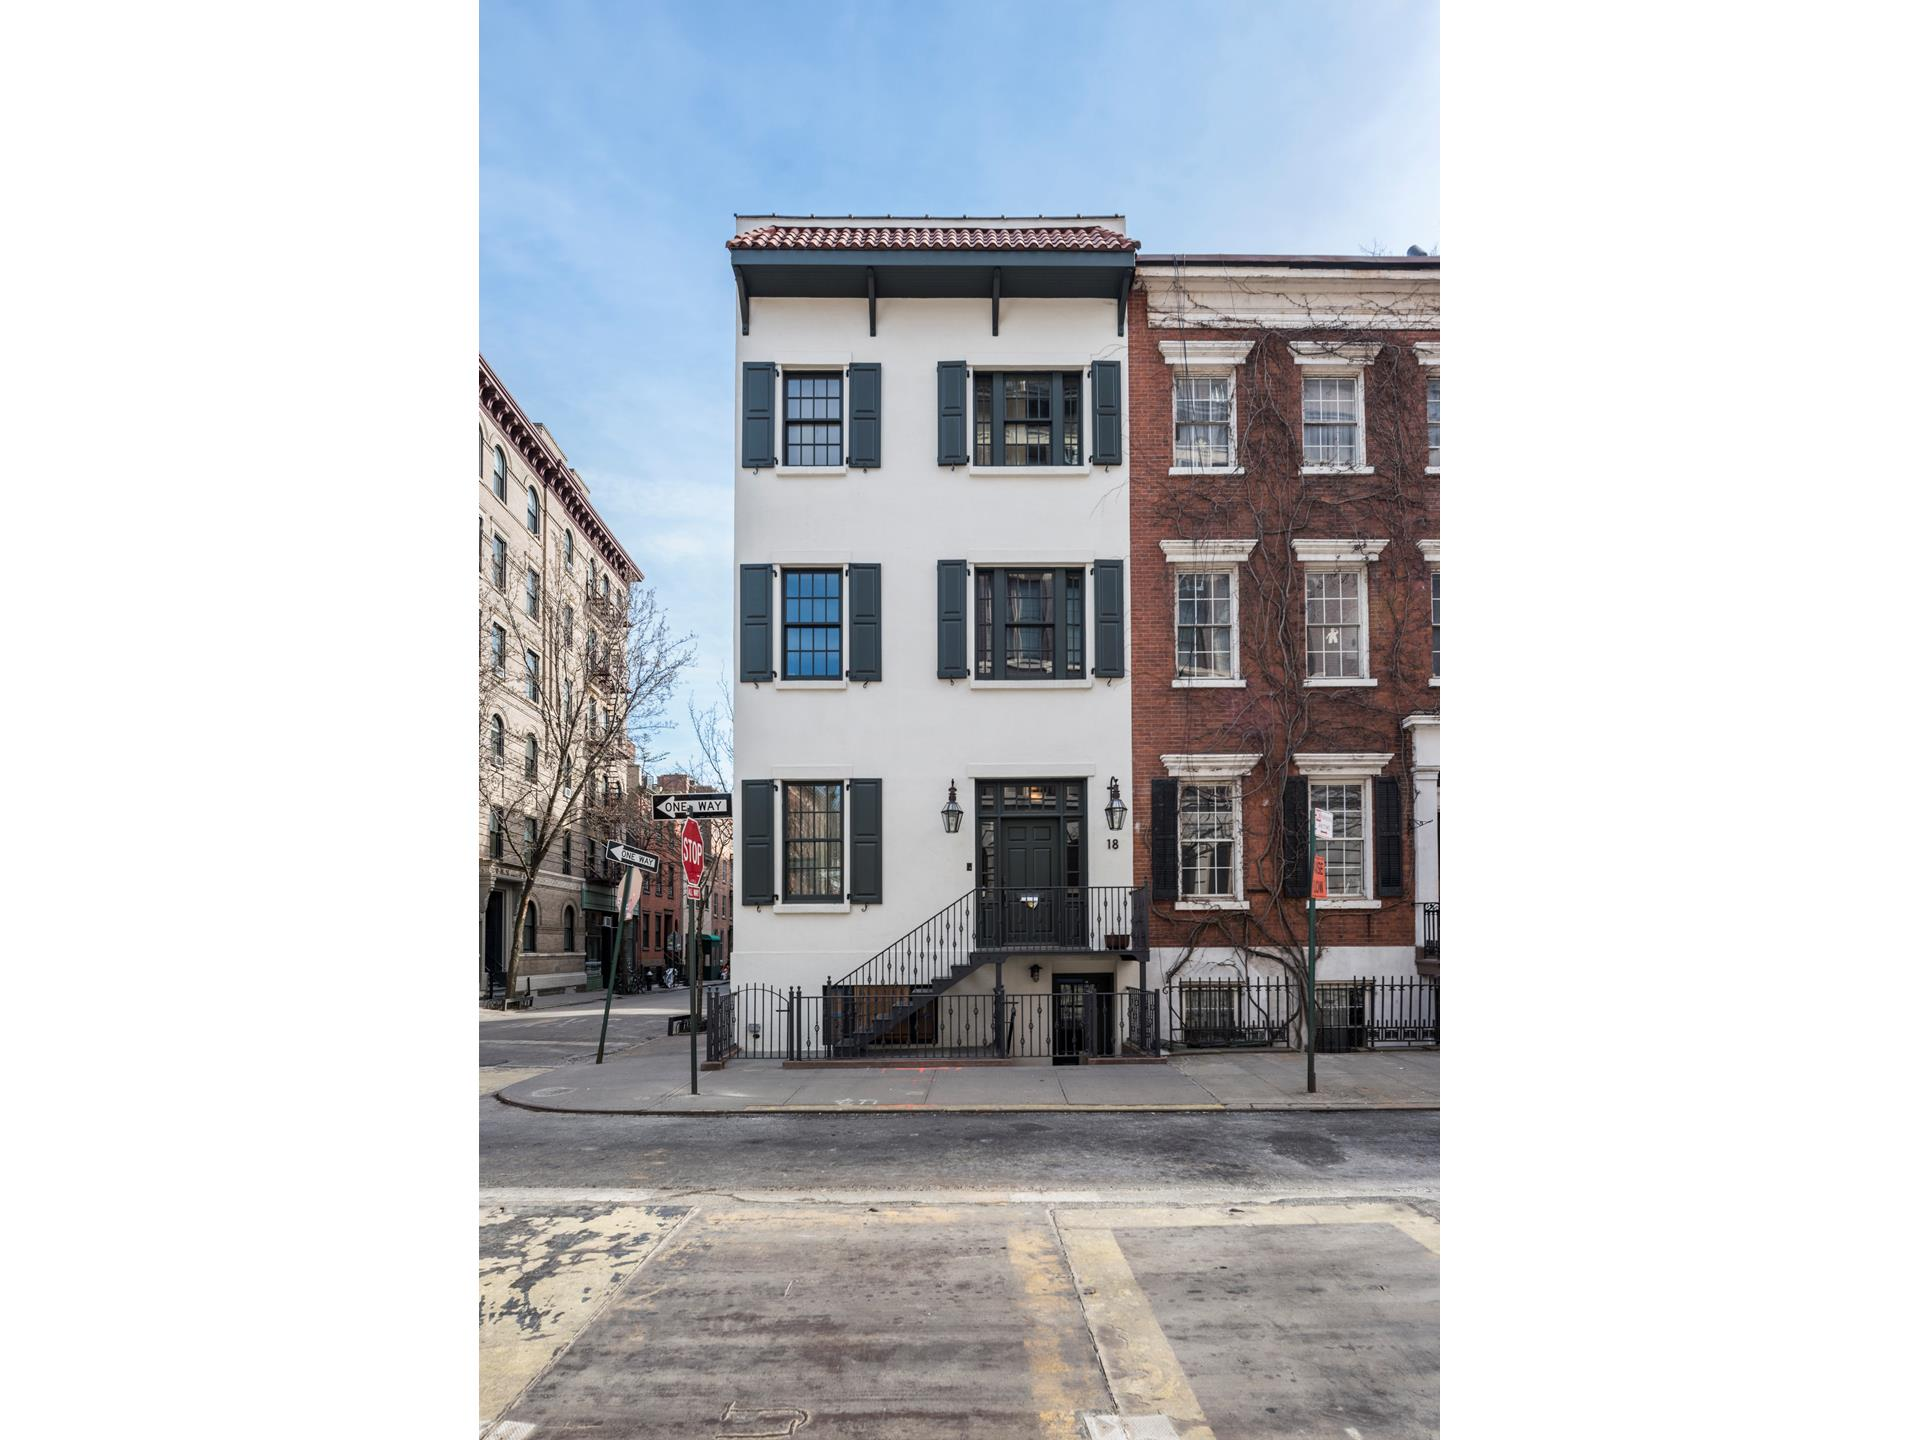 Single Family Home for Sale at 18 Grove Street 18 Grove Street New York, New York 10014 United States